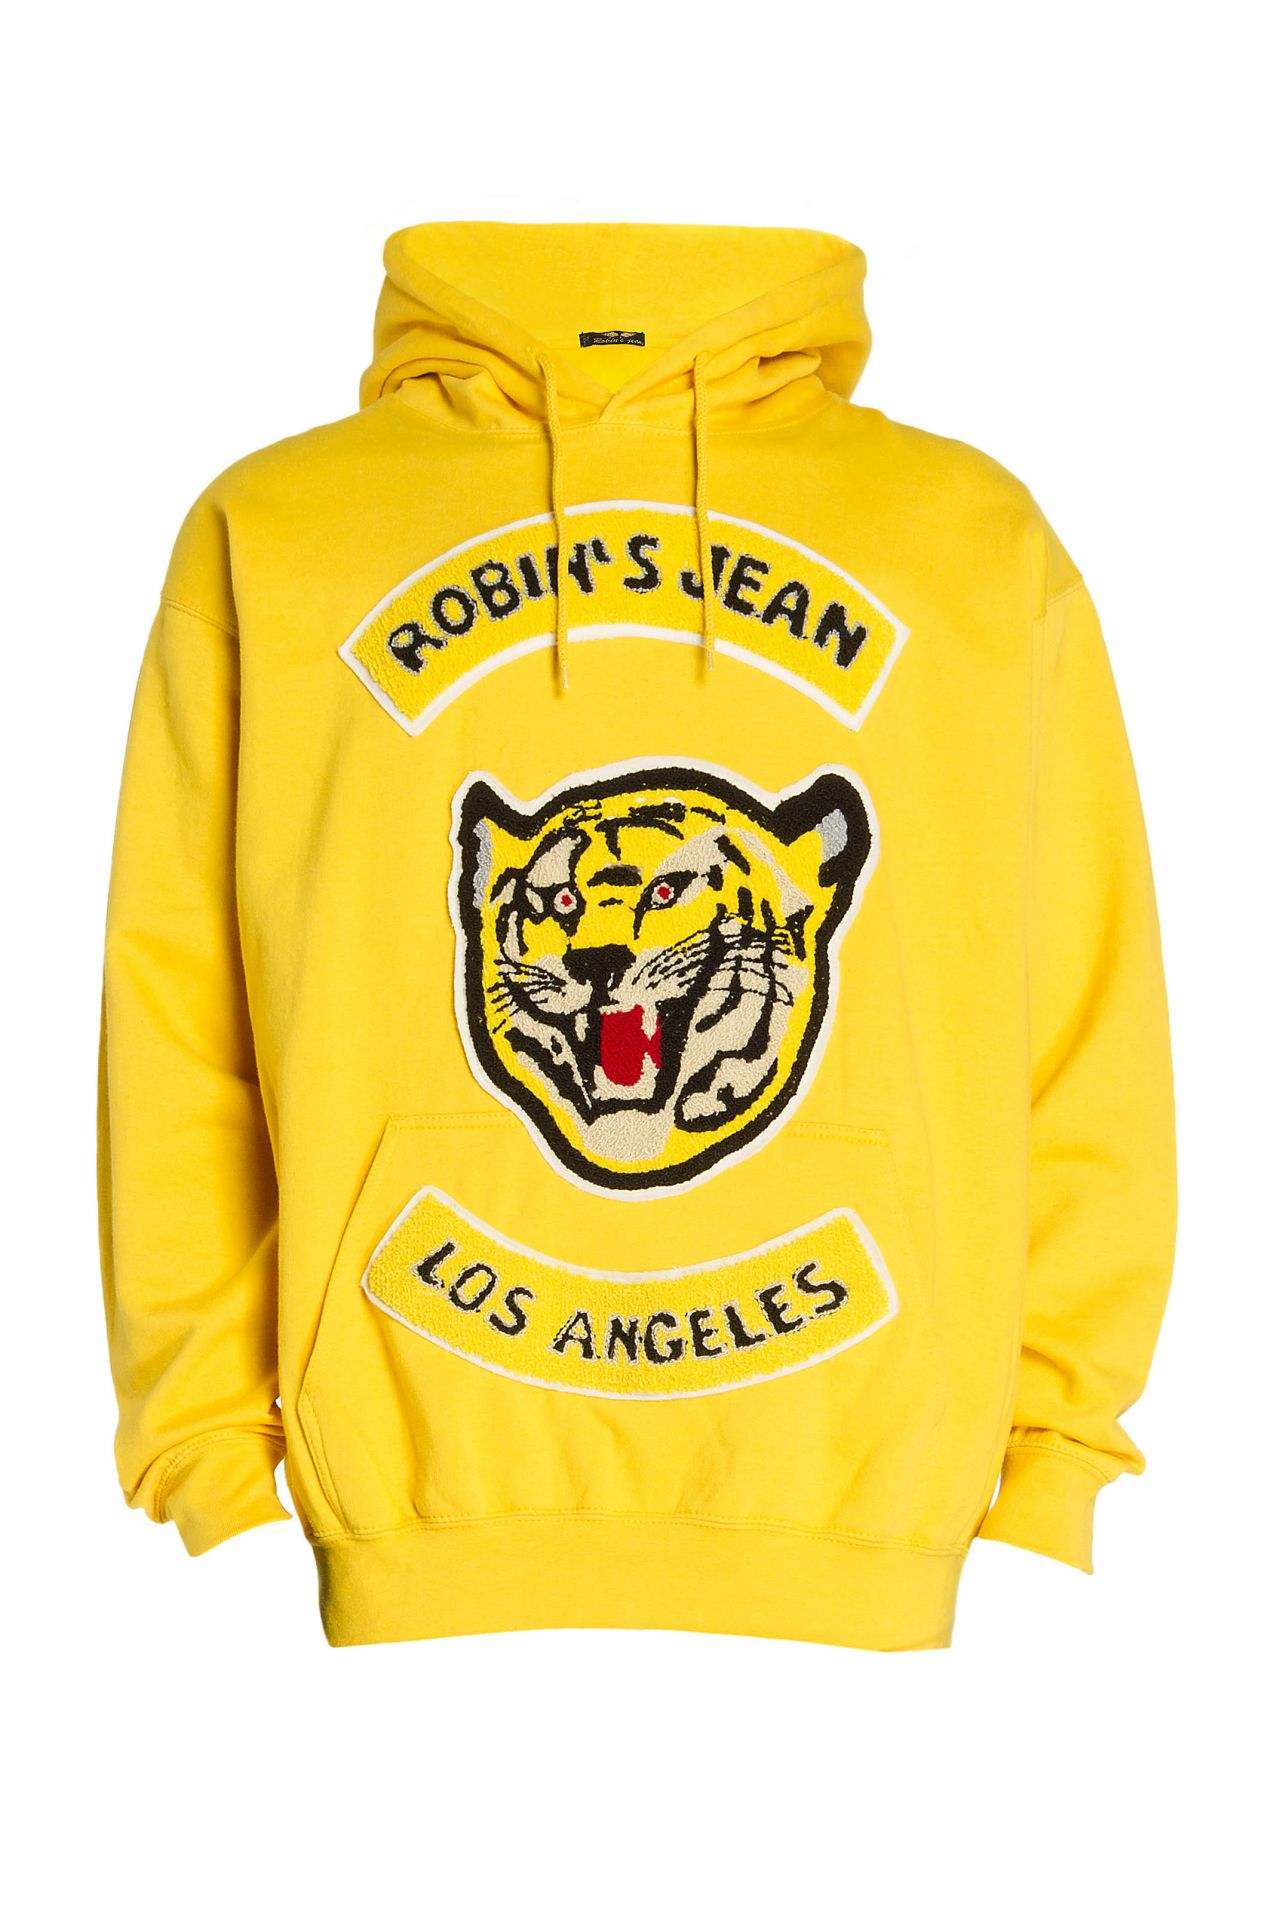 ROBINS VARSITY PULLOVER HOODIE IN YELLOW